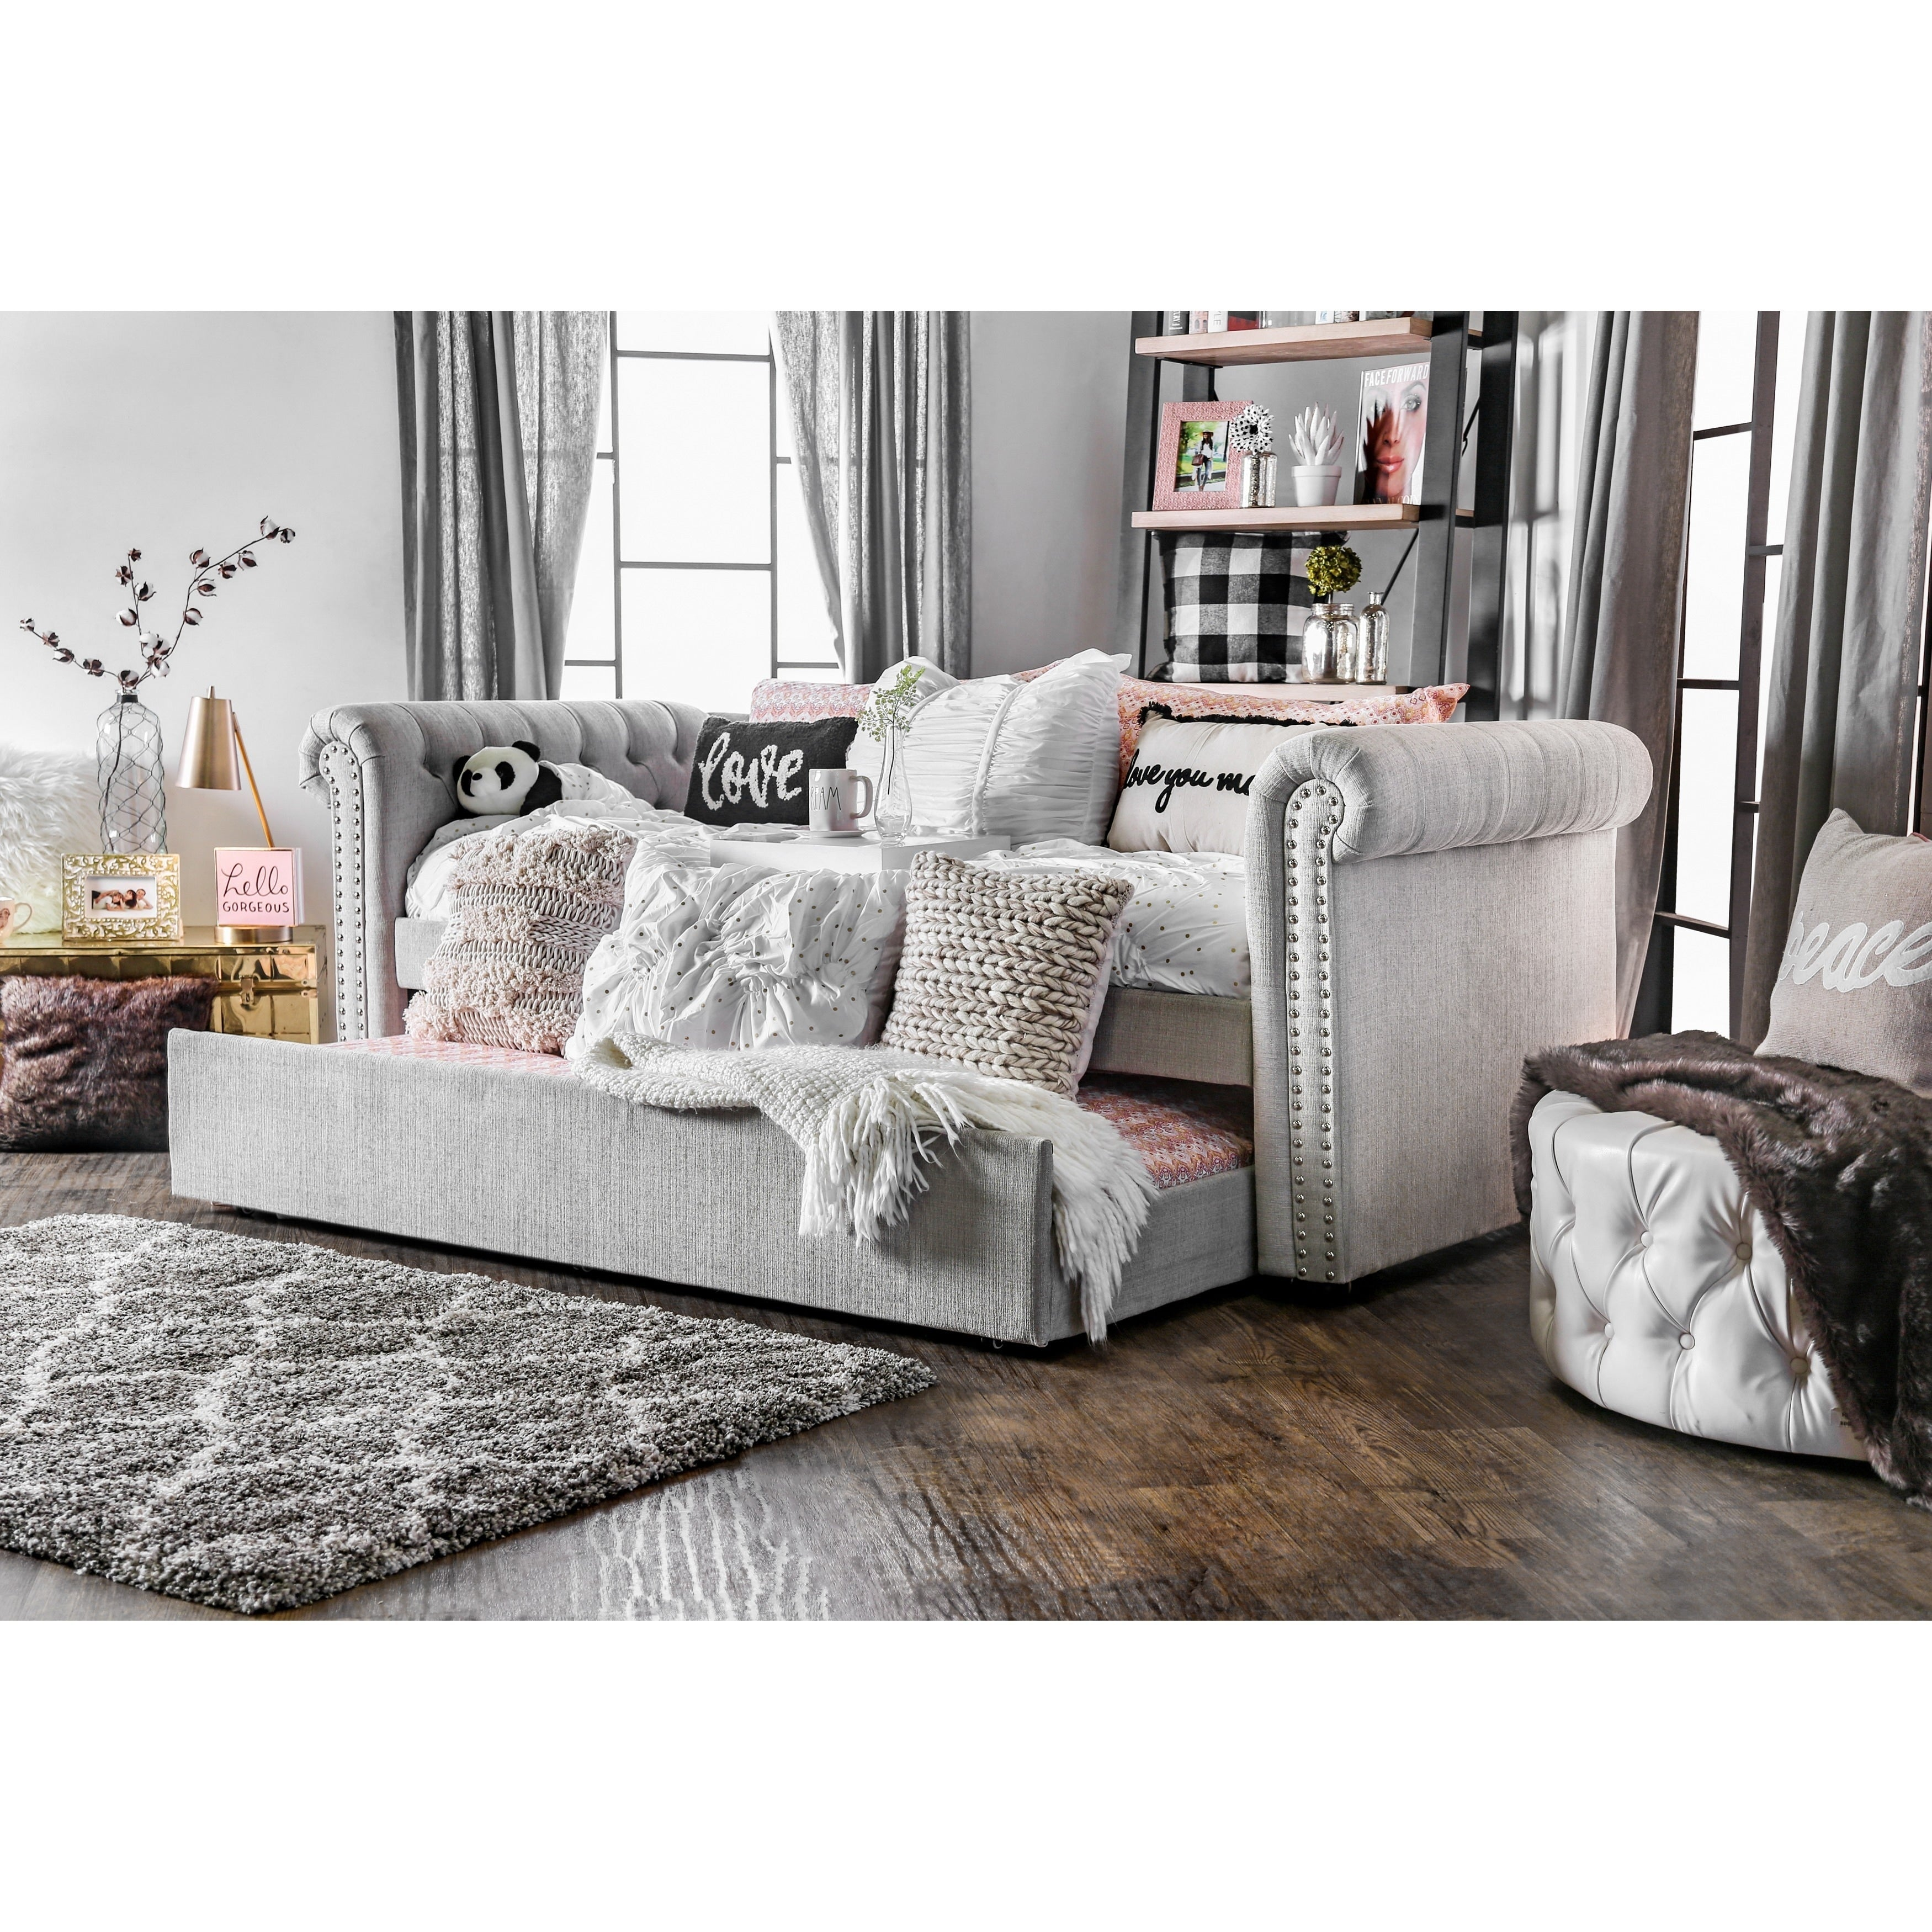 Furniture of America Filt Contemporary Twin Fabric Daybed with Trundle